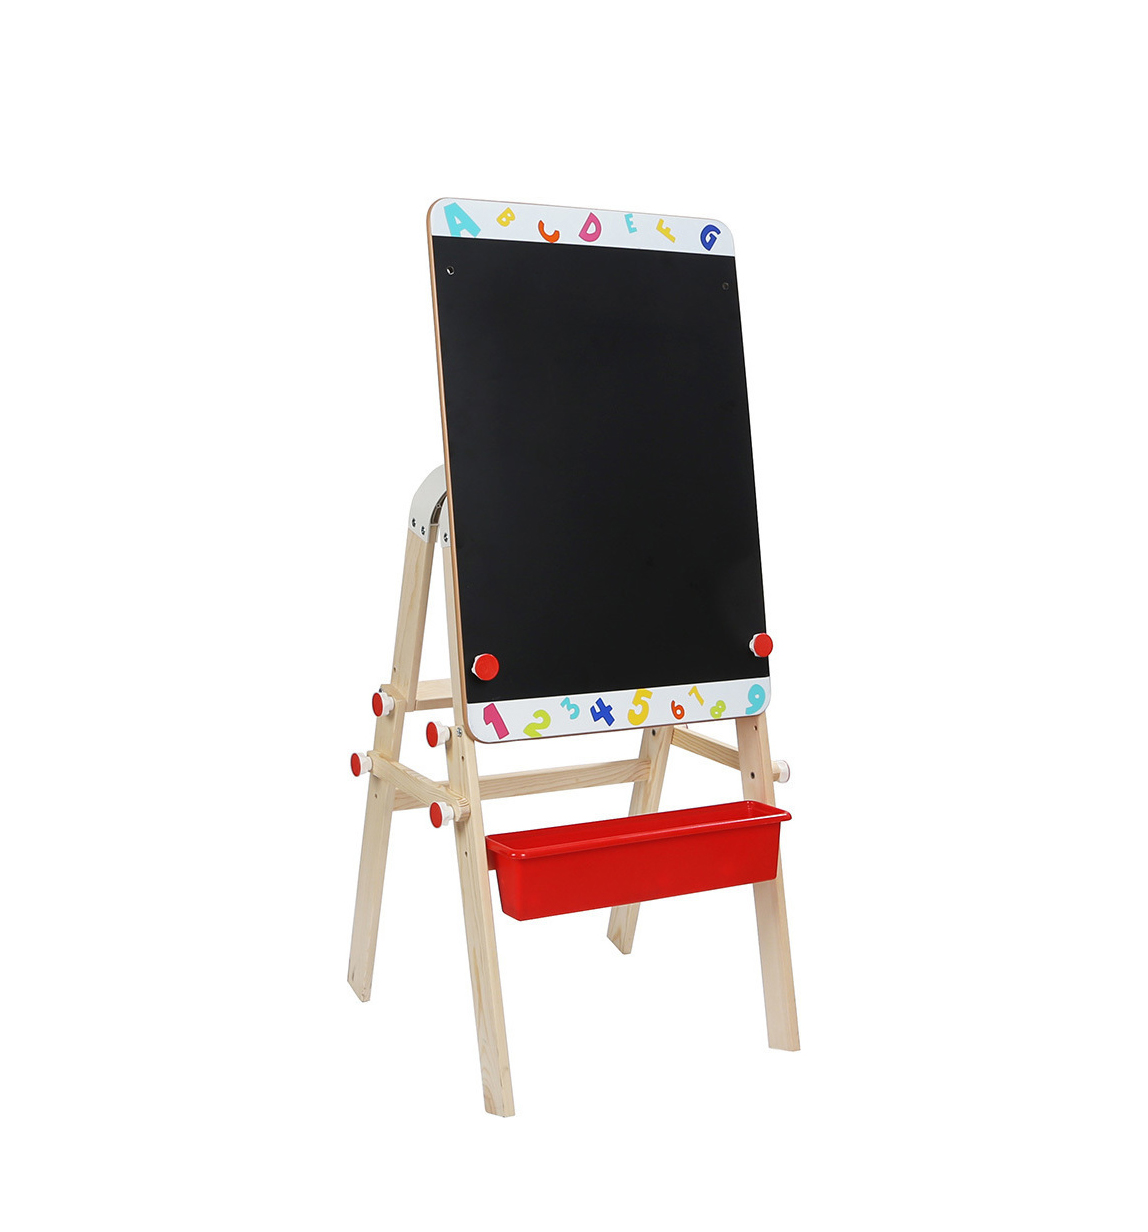 2 In 1 Convertible Easel 120222